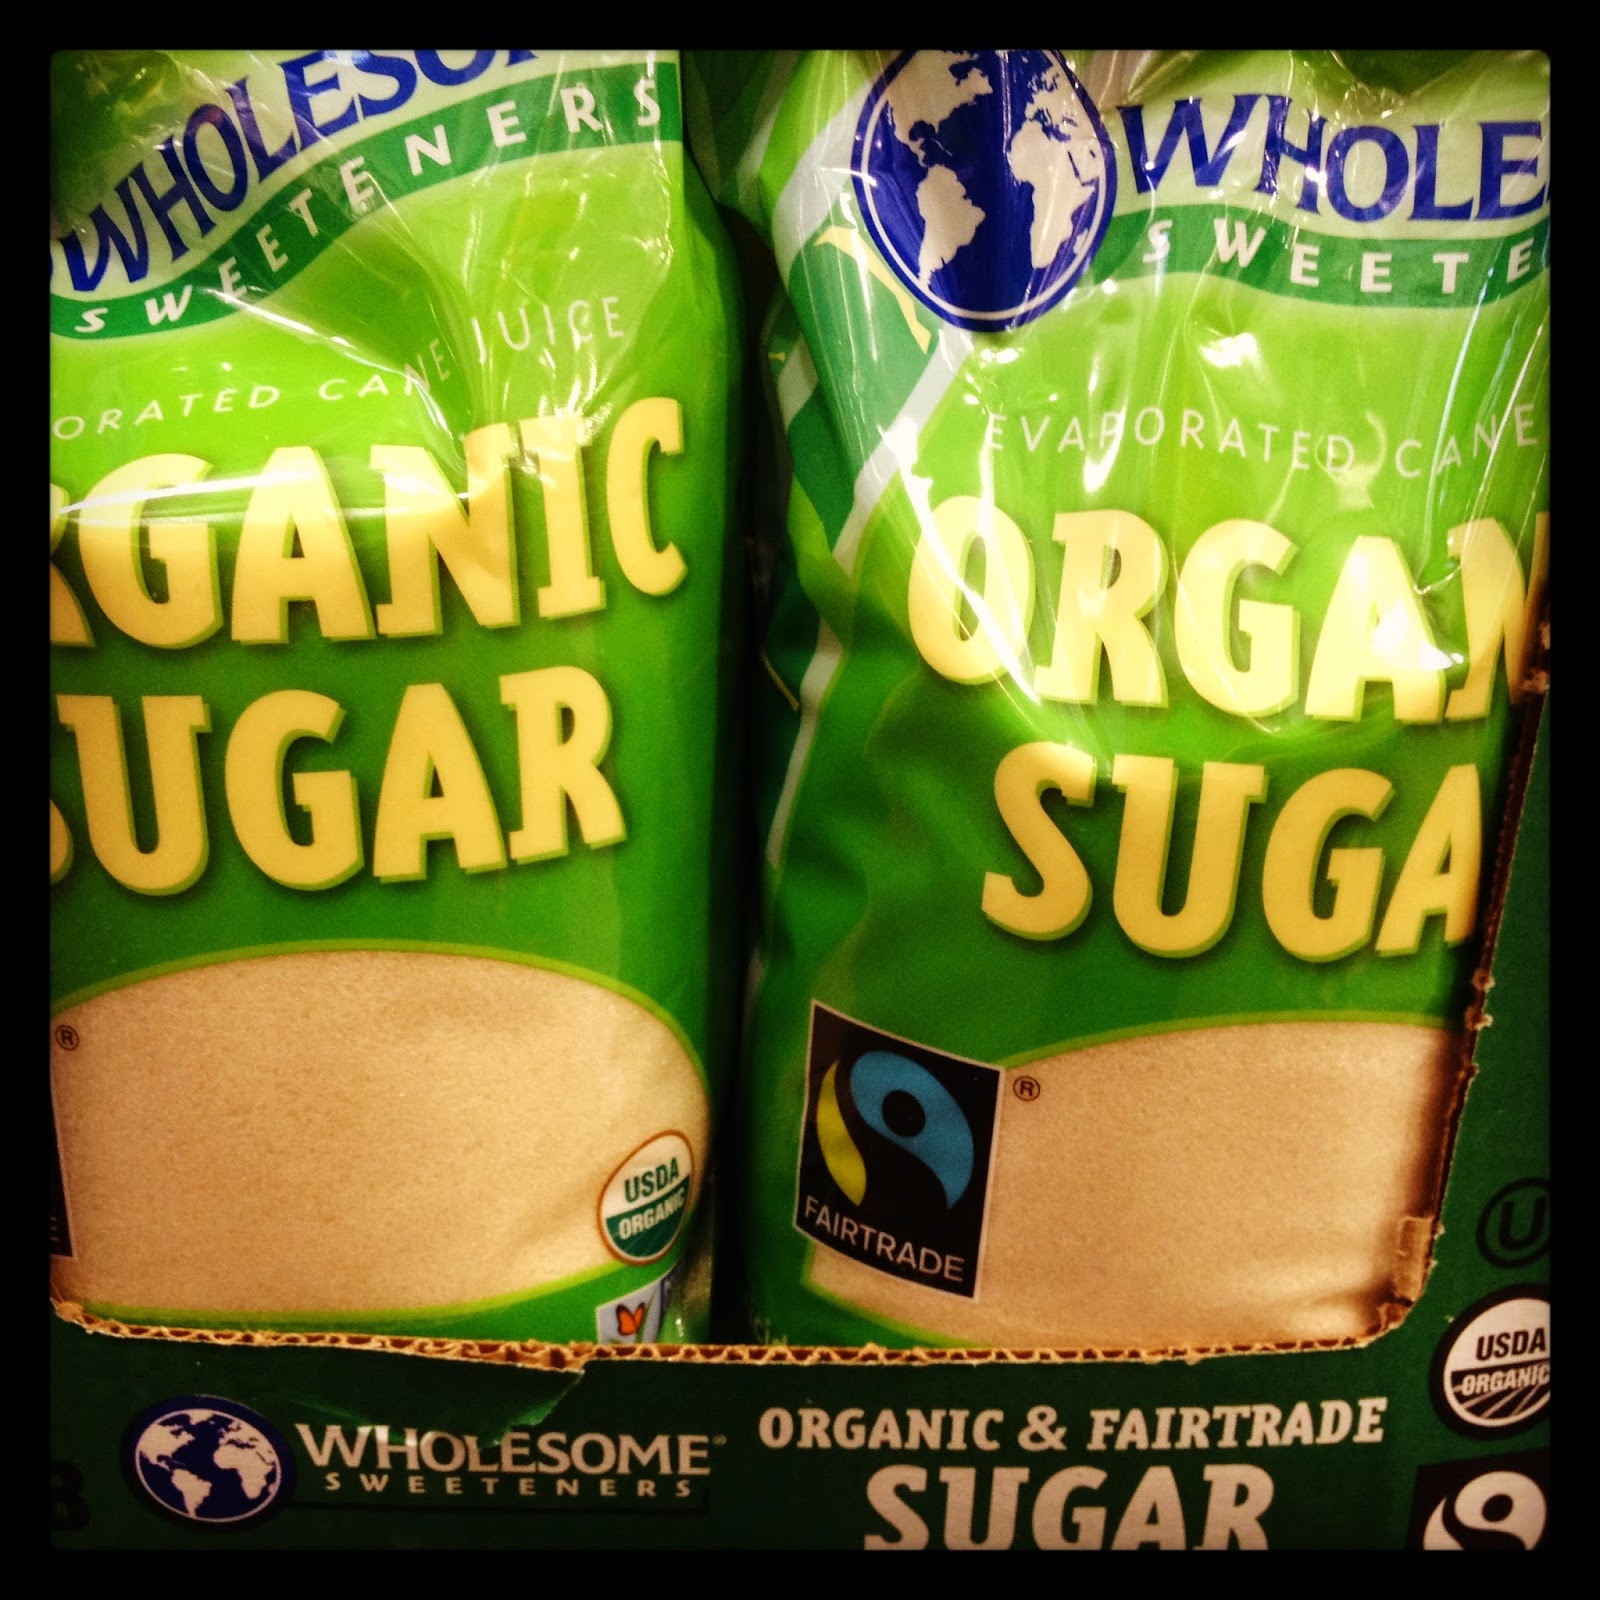 Vegan Wholesome Sweeteners Organic Sugar Costco